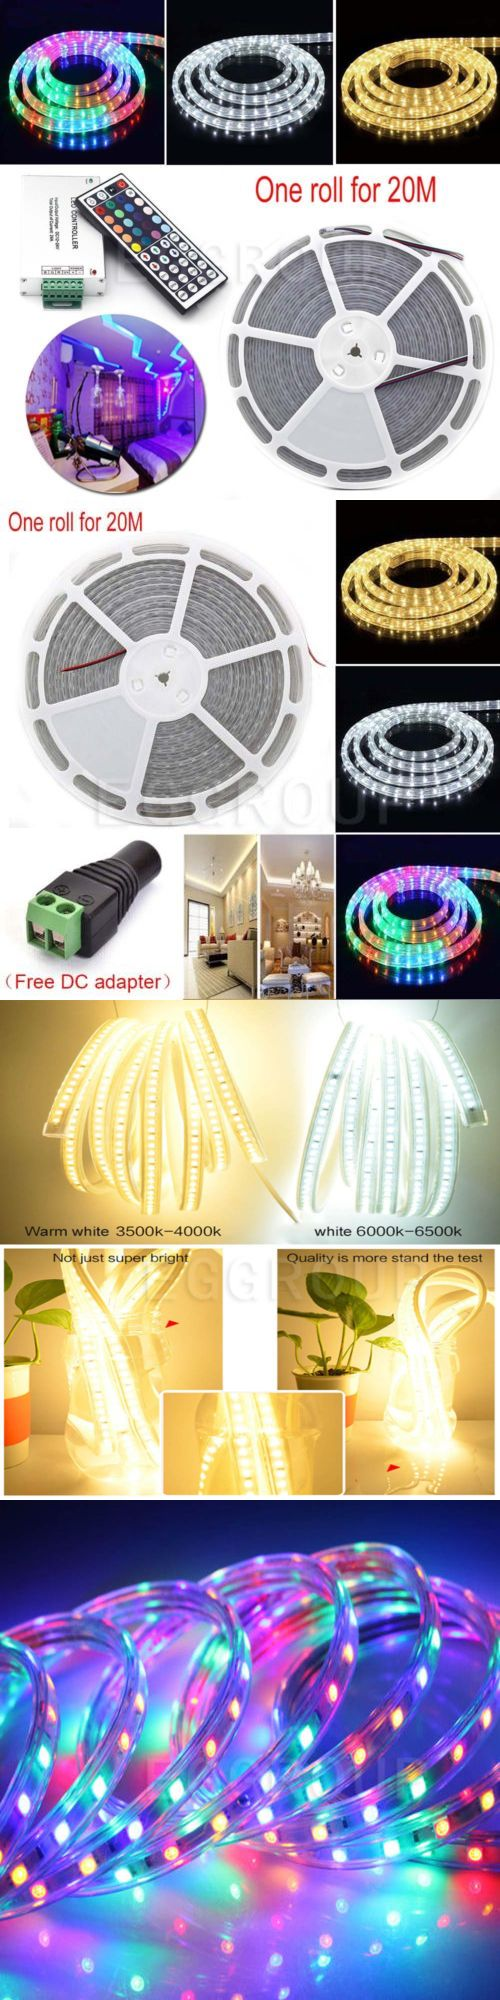 12w led 5050smd corn bulb spot light warm white lamp g4 ebay - Lamps And Lighting 20m 1200 Leds Smd 5050 Waterproof Led Strip Fairy Light Dc